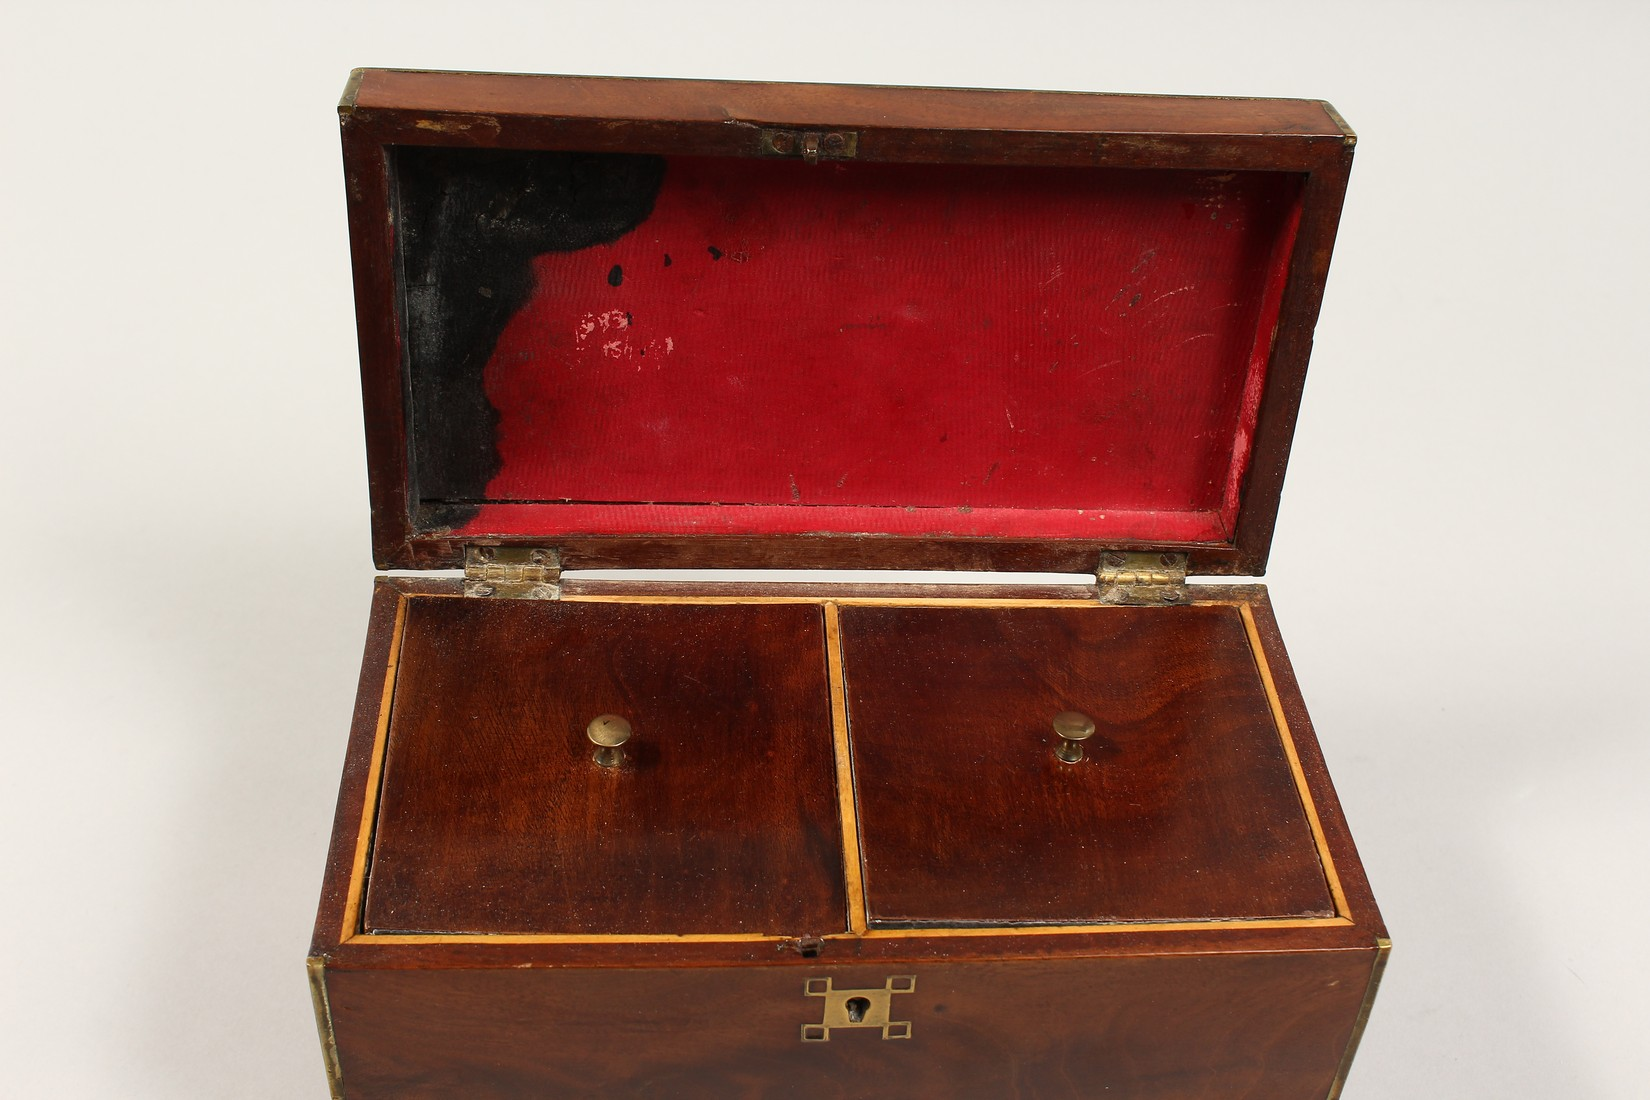 A REGENCY MAHOGANY TWO DIVISION TEA CADDY with brass stringing. 8ins long - Image 6 of 7